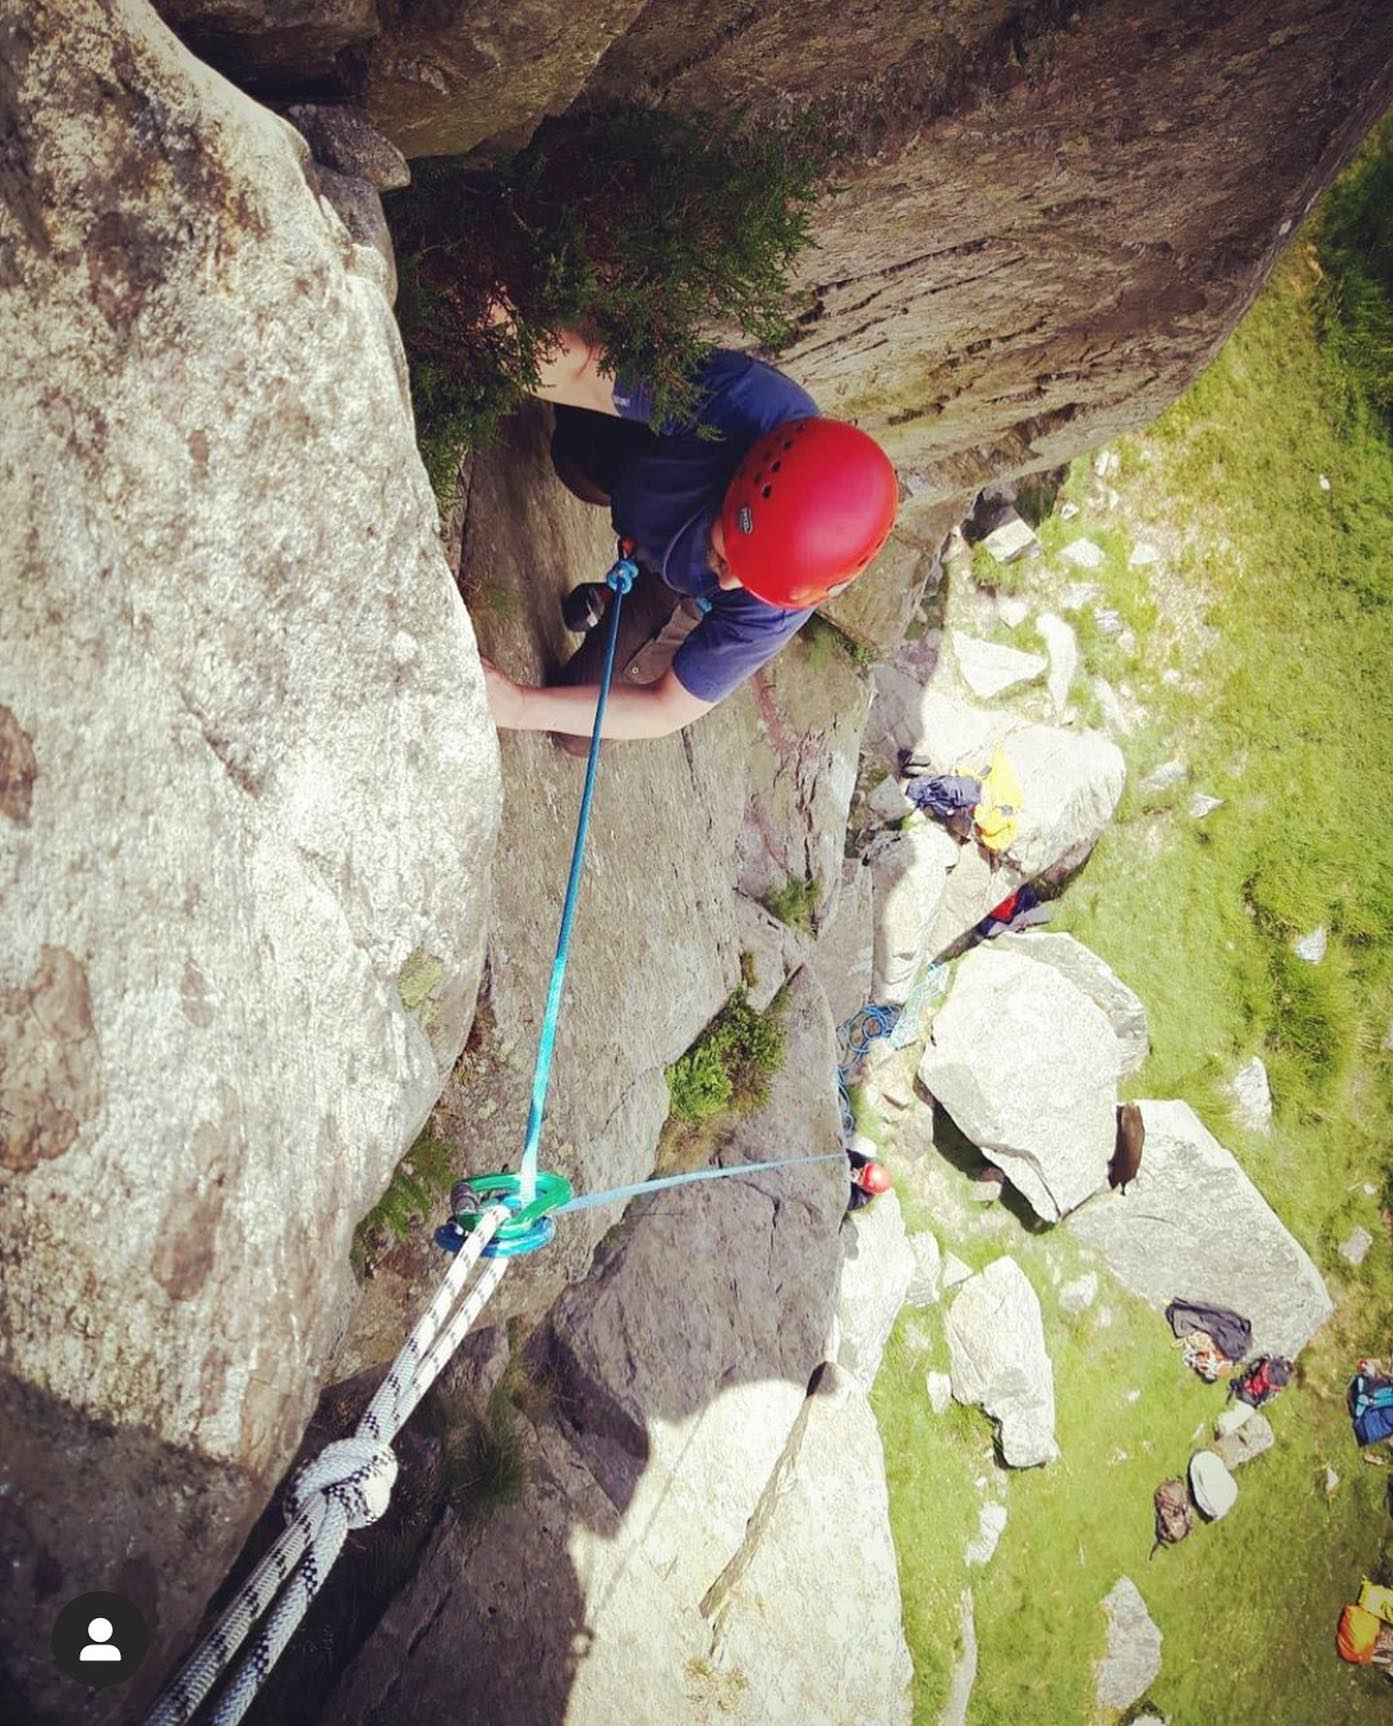 Our Autumn Rock climbing sessions are going ahead on 17 and 19 October at Windgather Rocks near Whaley Bridge in the Peak District. More info and booking at www.wilderness-development.com, link in our bio 🧗‍♀️⛰🧗‍♀️ . . . #wildernessdevelopment #smallbusiness #rockclimbing #climbing #scrambling #abseiling #trysomethingnew #windgatherrocks #peakdistrict #whaleybridge #mountainsfellsandhikes #roamtheuk #outdoorpursuits #outdooradventures #outdooractivities #nationalparksuk #booknow